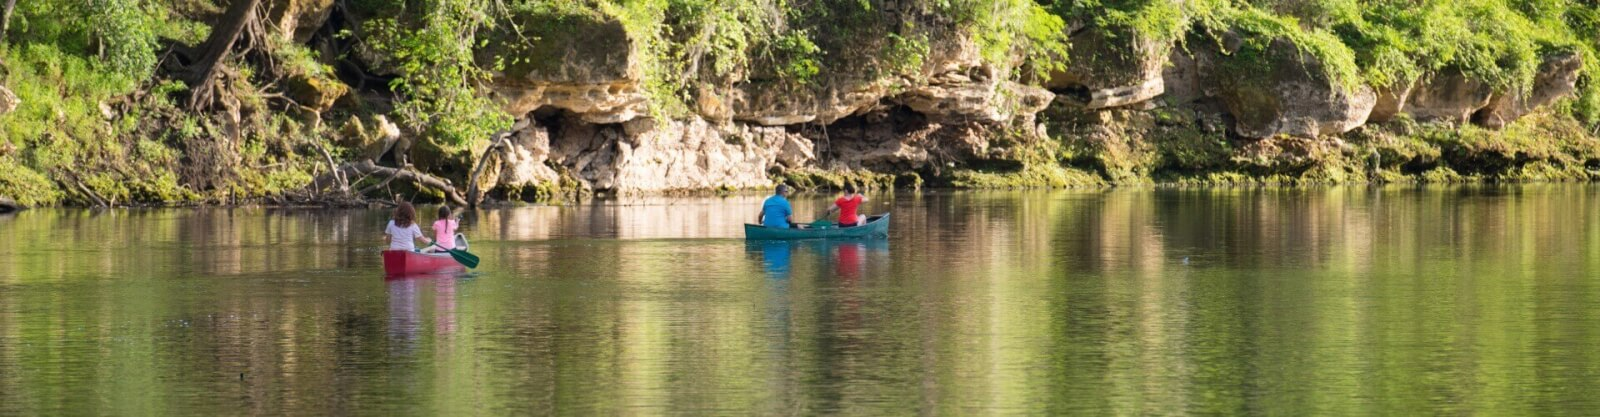 Family in canoes on the Suwannee River